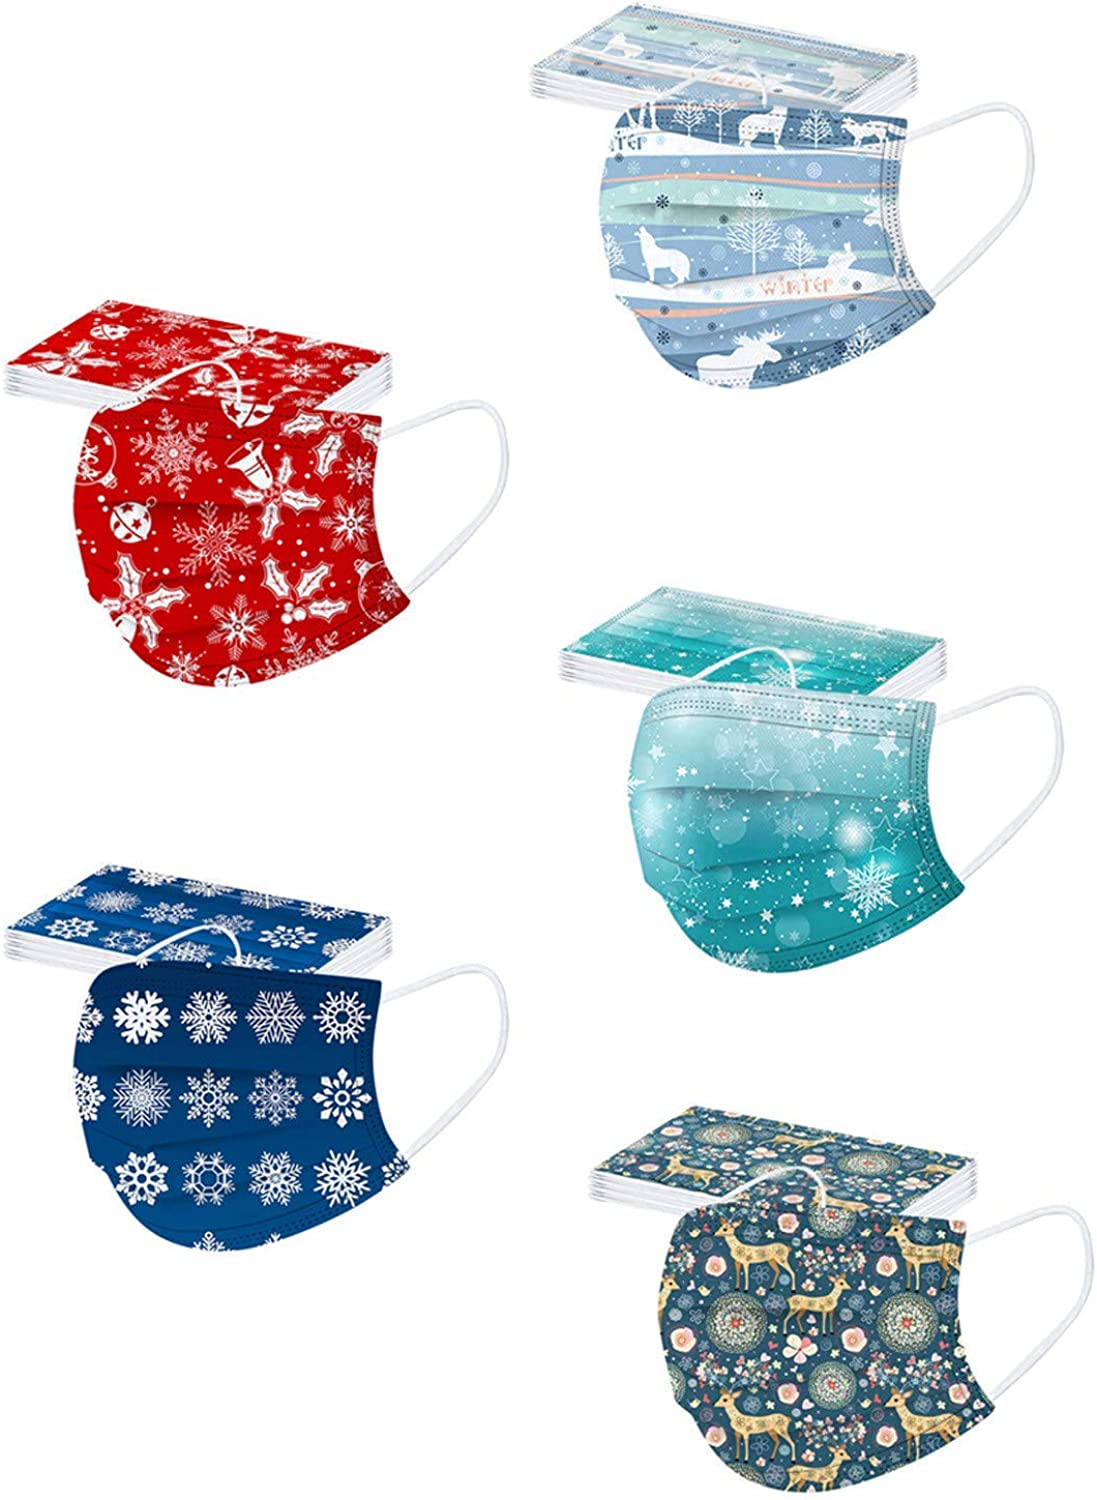 50PCS Winter Disposable Face_Masks For Adults Holiday Face_Masks with Designs Christmas Pattern 3-Ply Non-Woven Paper_Mask